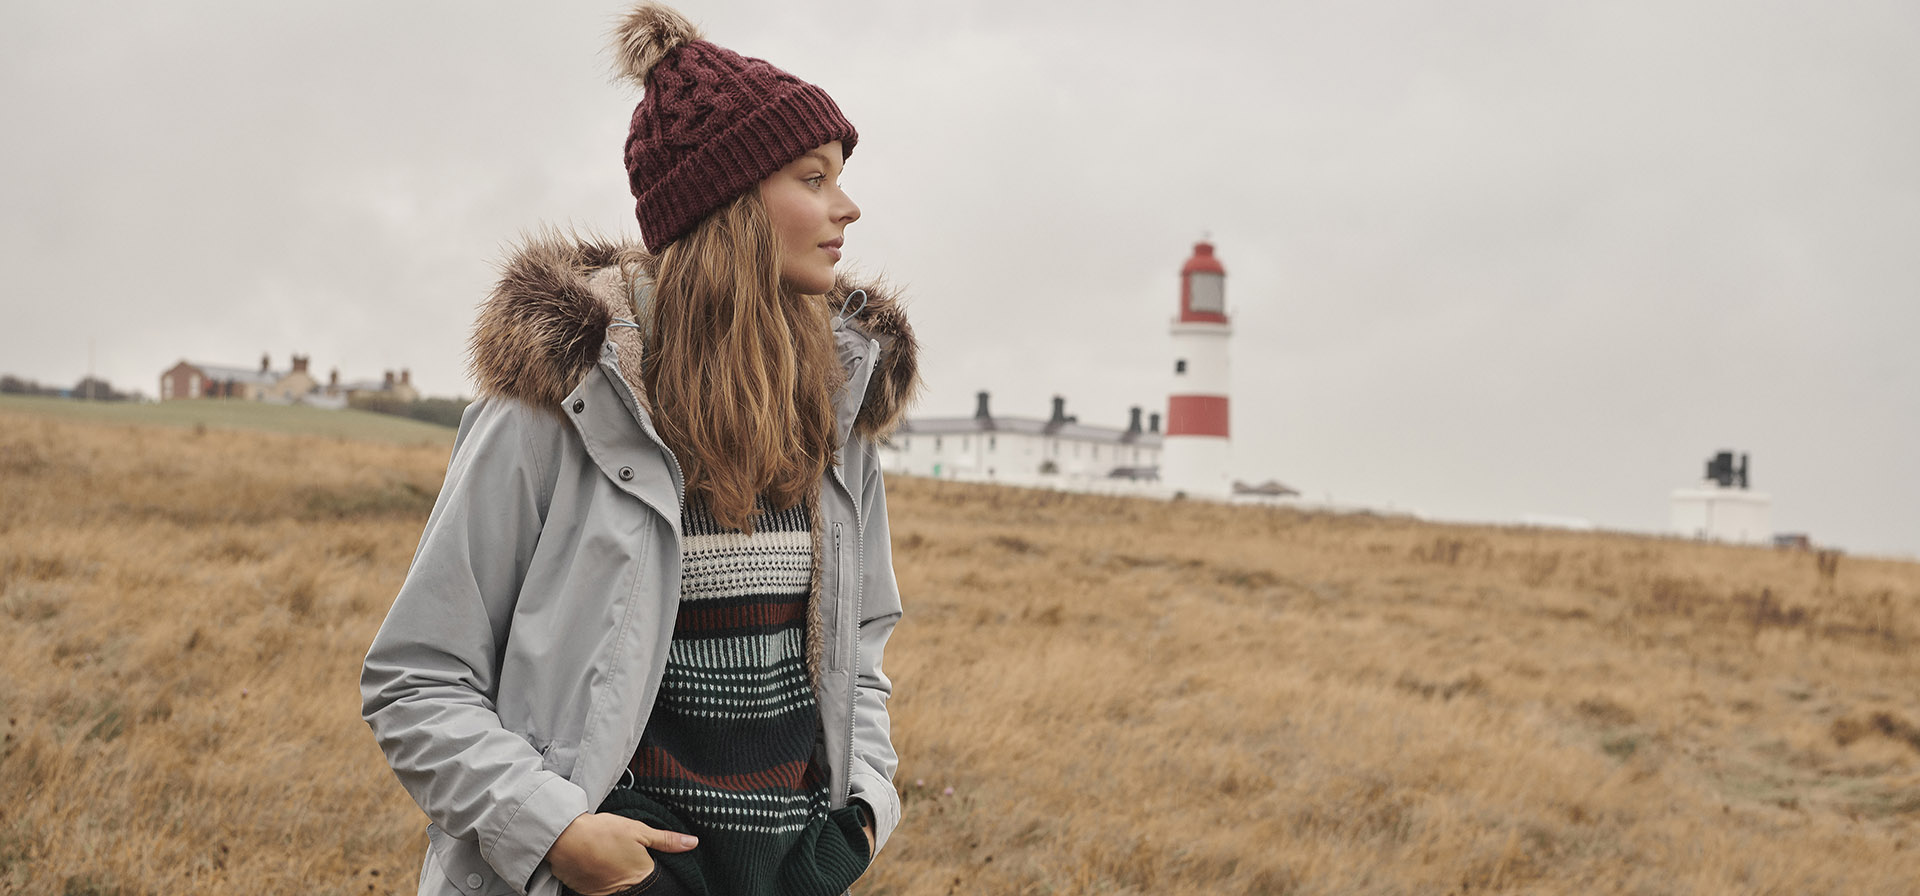 (Barbour) Barbour AW20 Coastal collection